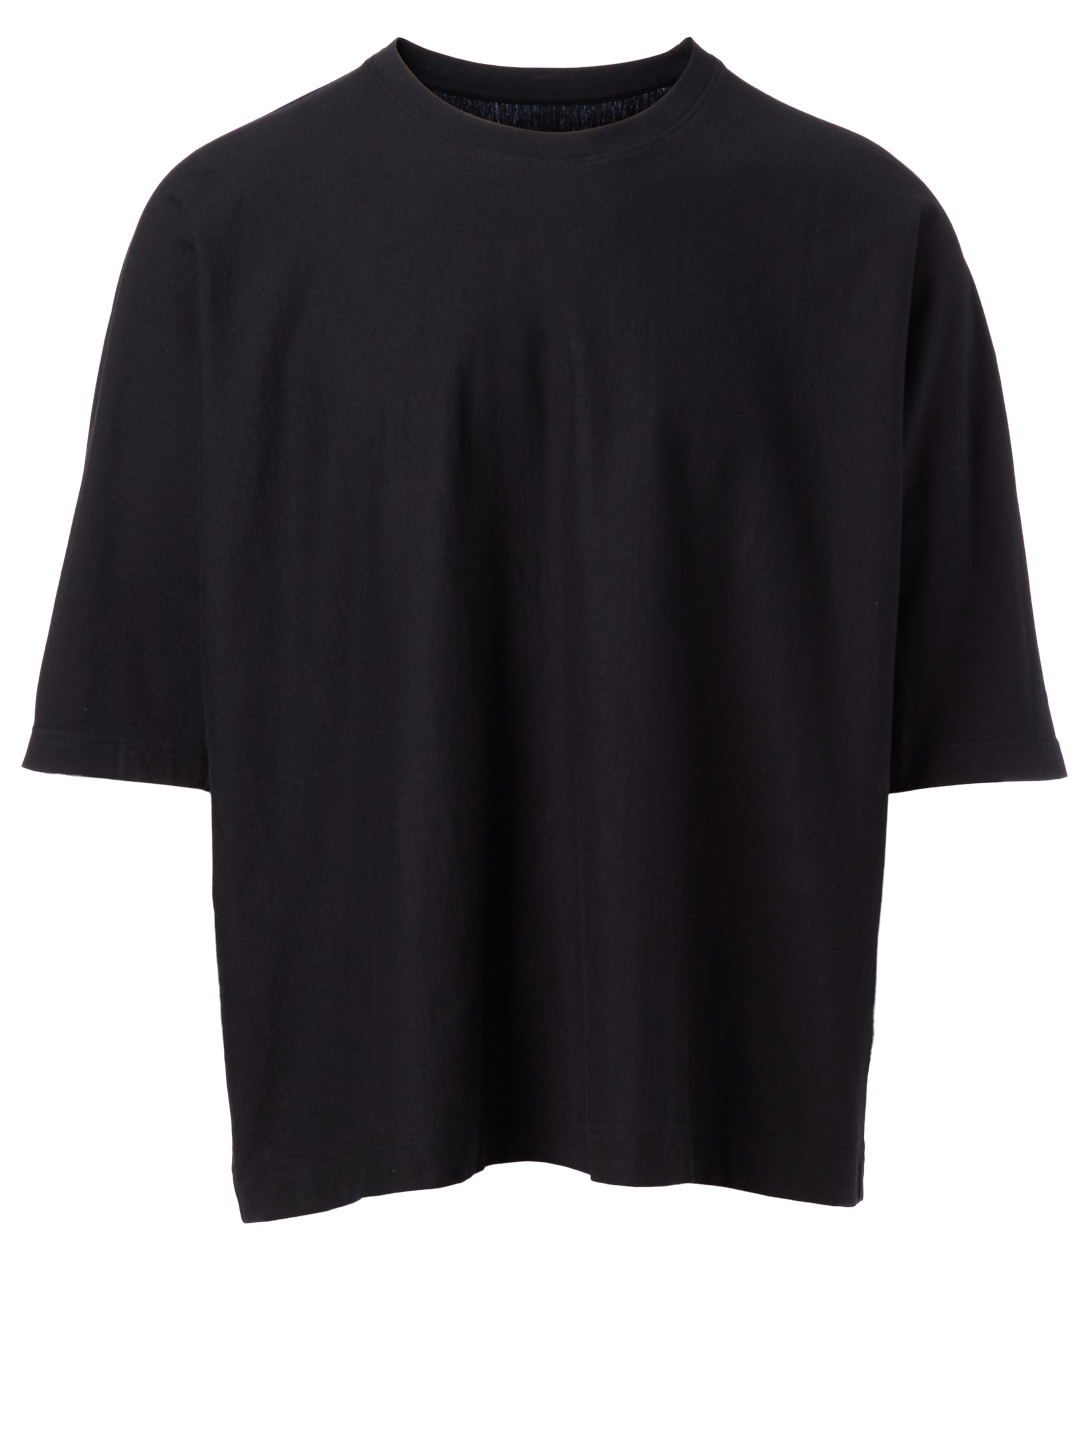 HOMME PLISSÉ ISSEY MIYAKE Cotton Oversized T-Shirt Men's Black